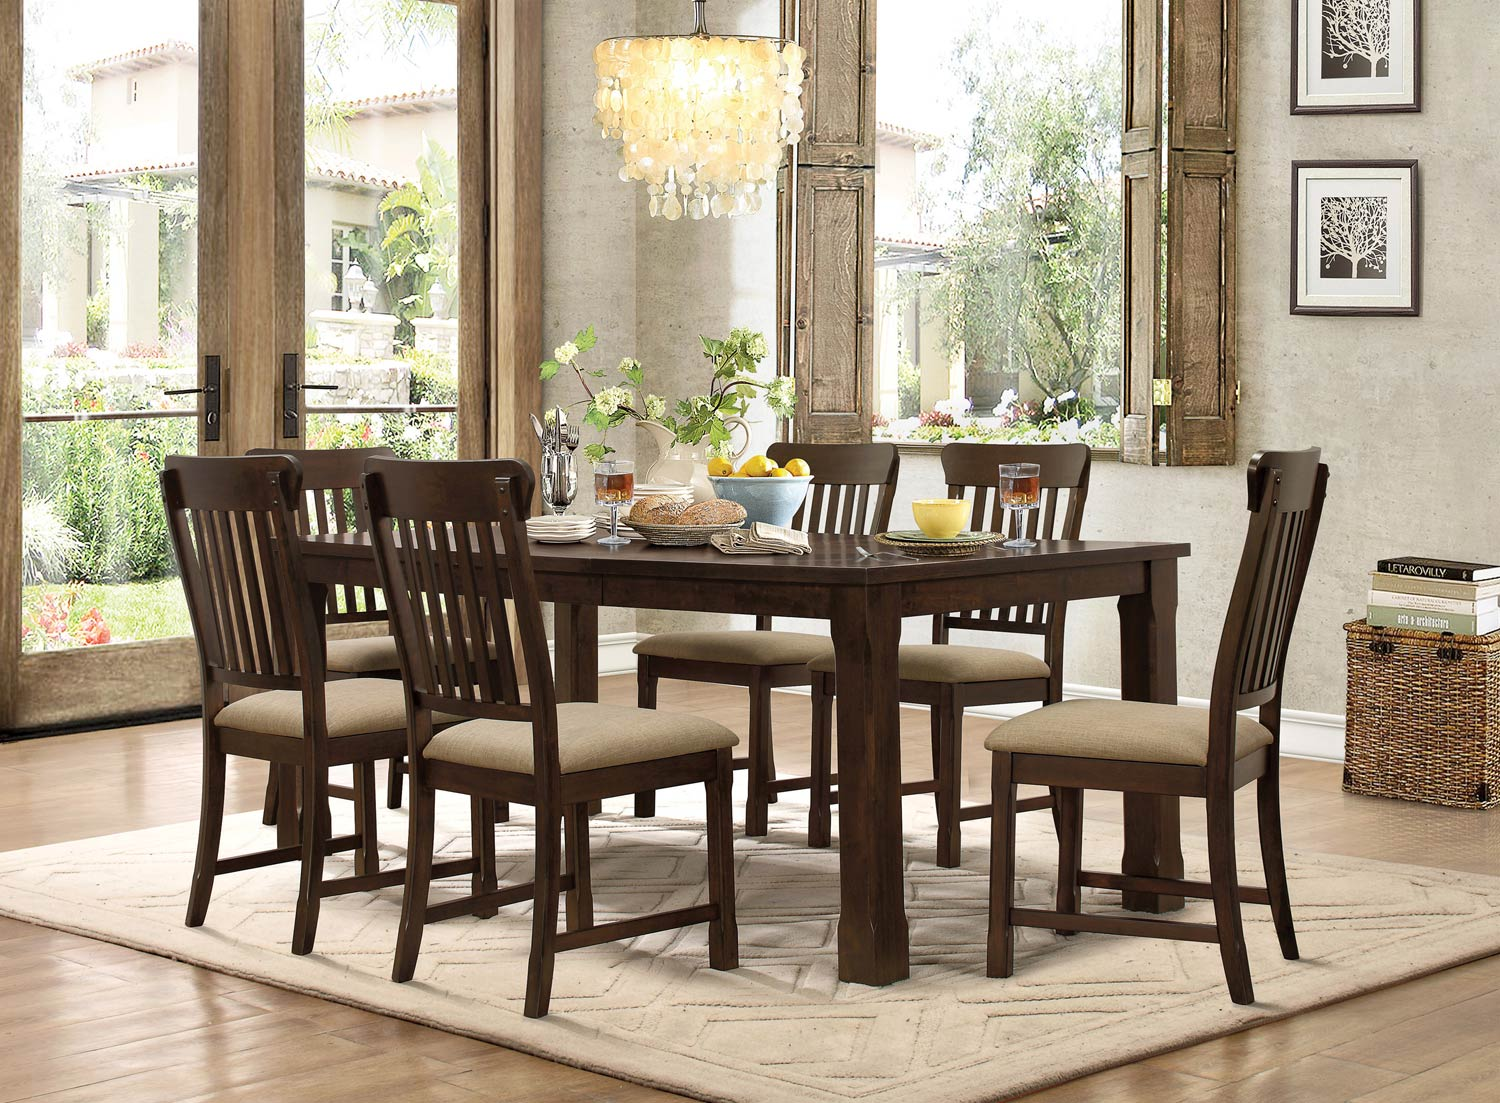 Homelegance Sycamore Dining Set - Burnished Dark Walnut